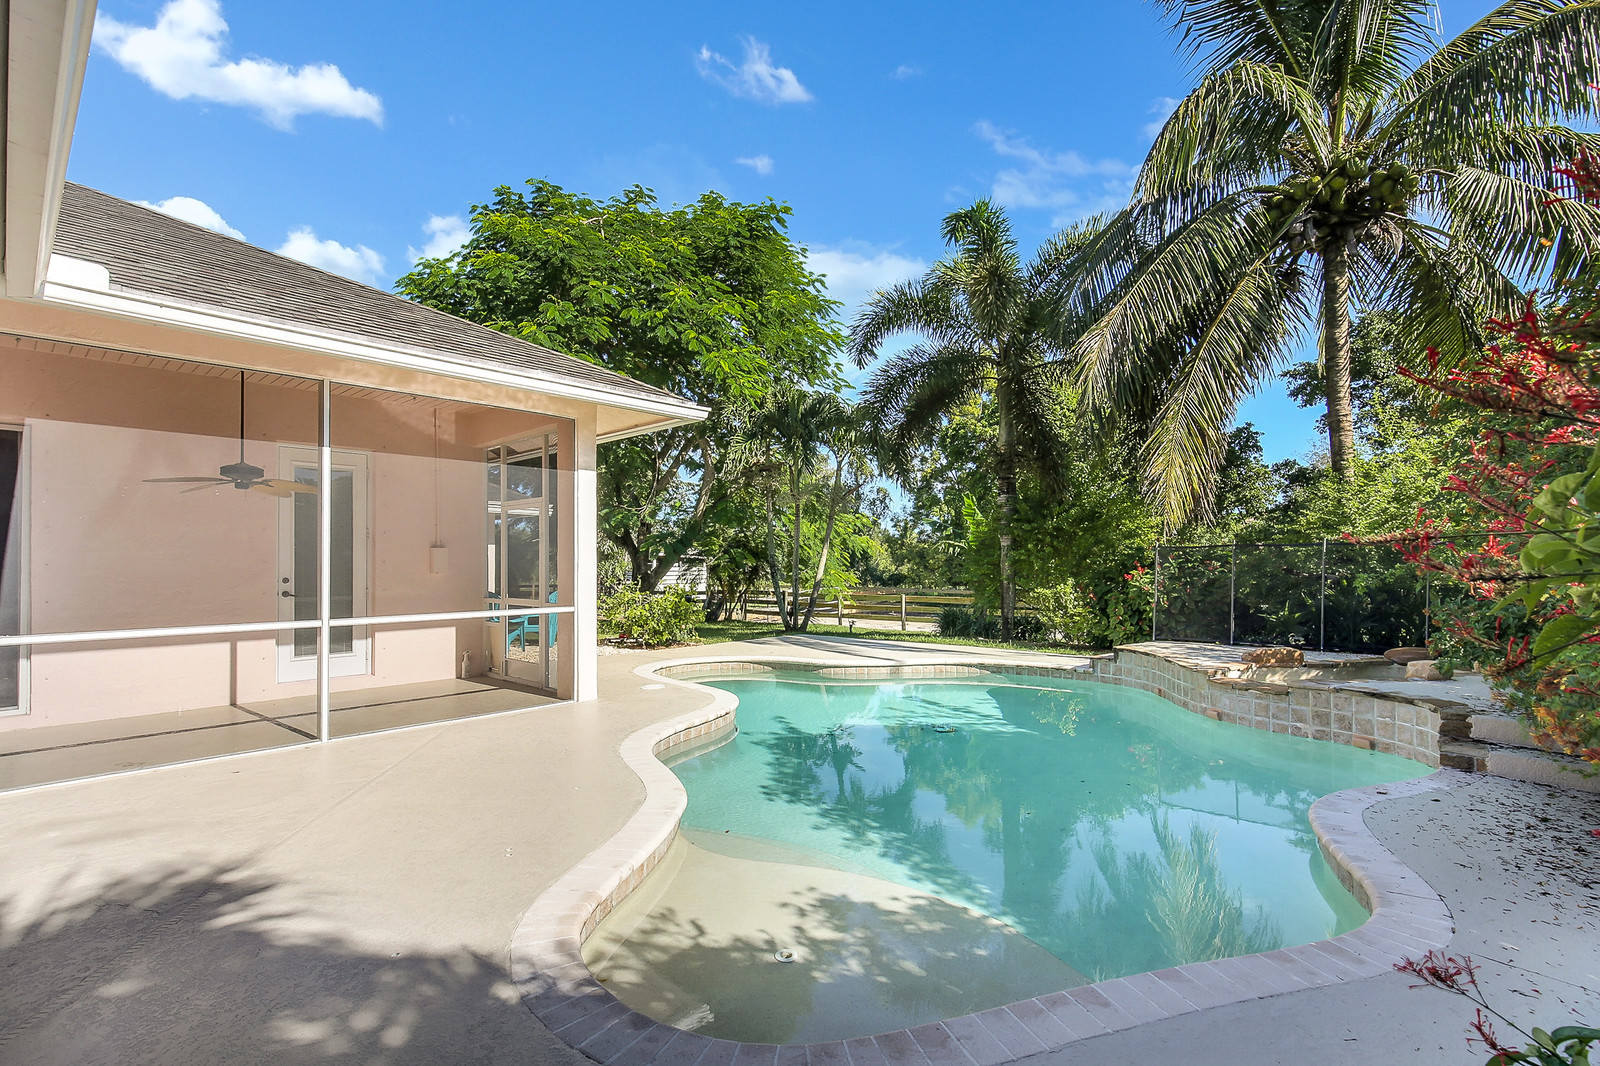 Loxahatchee Home Search home for sale